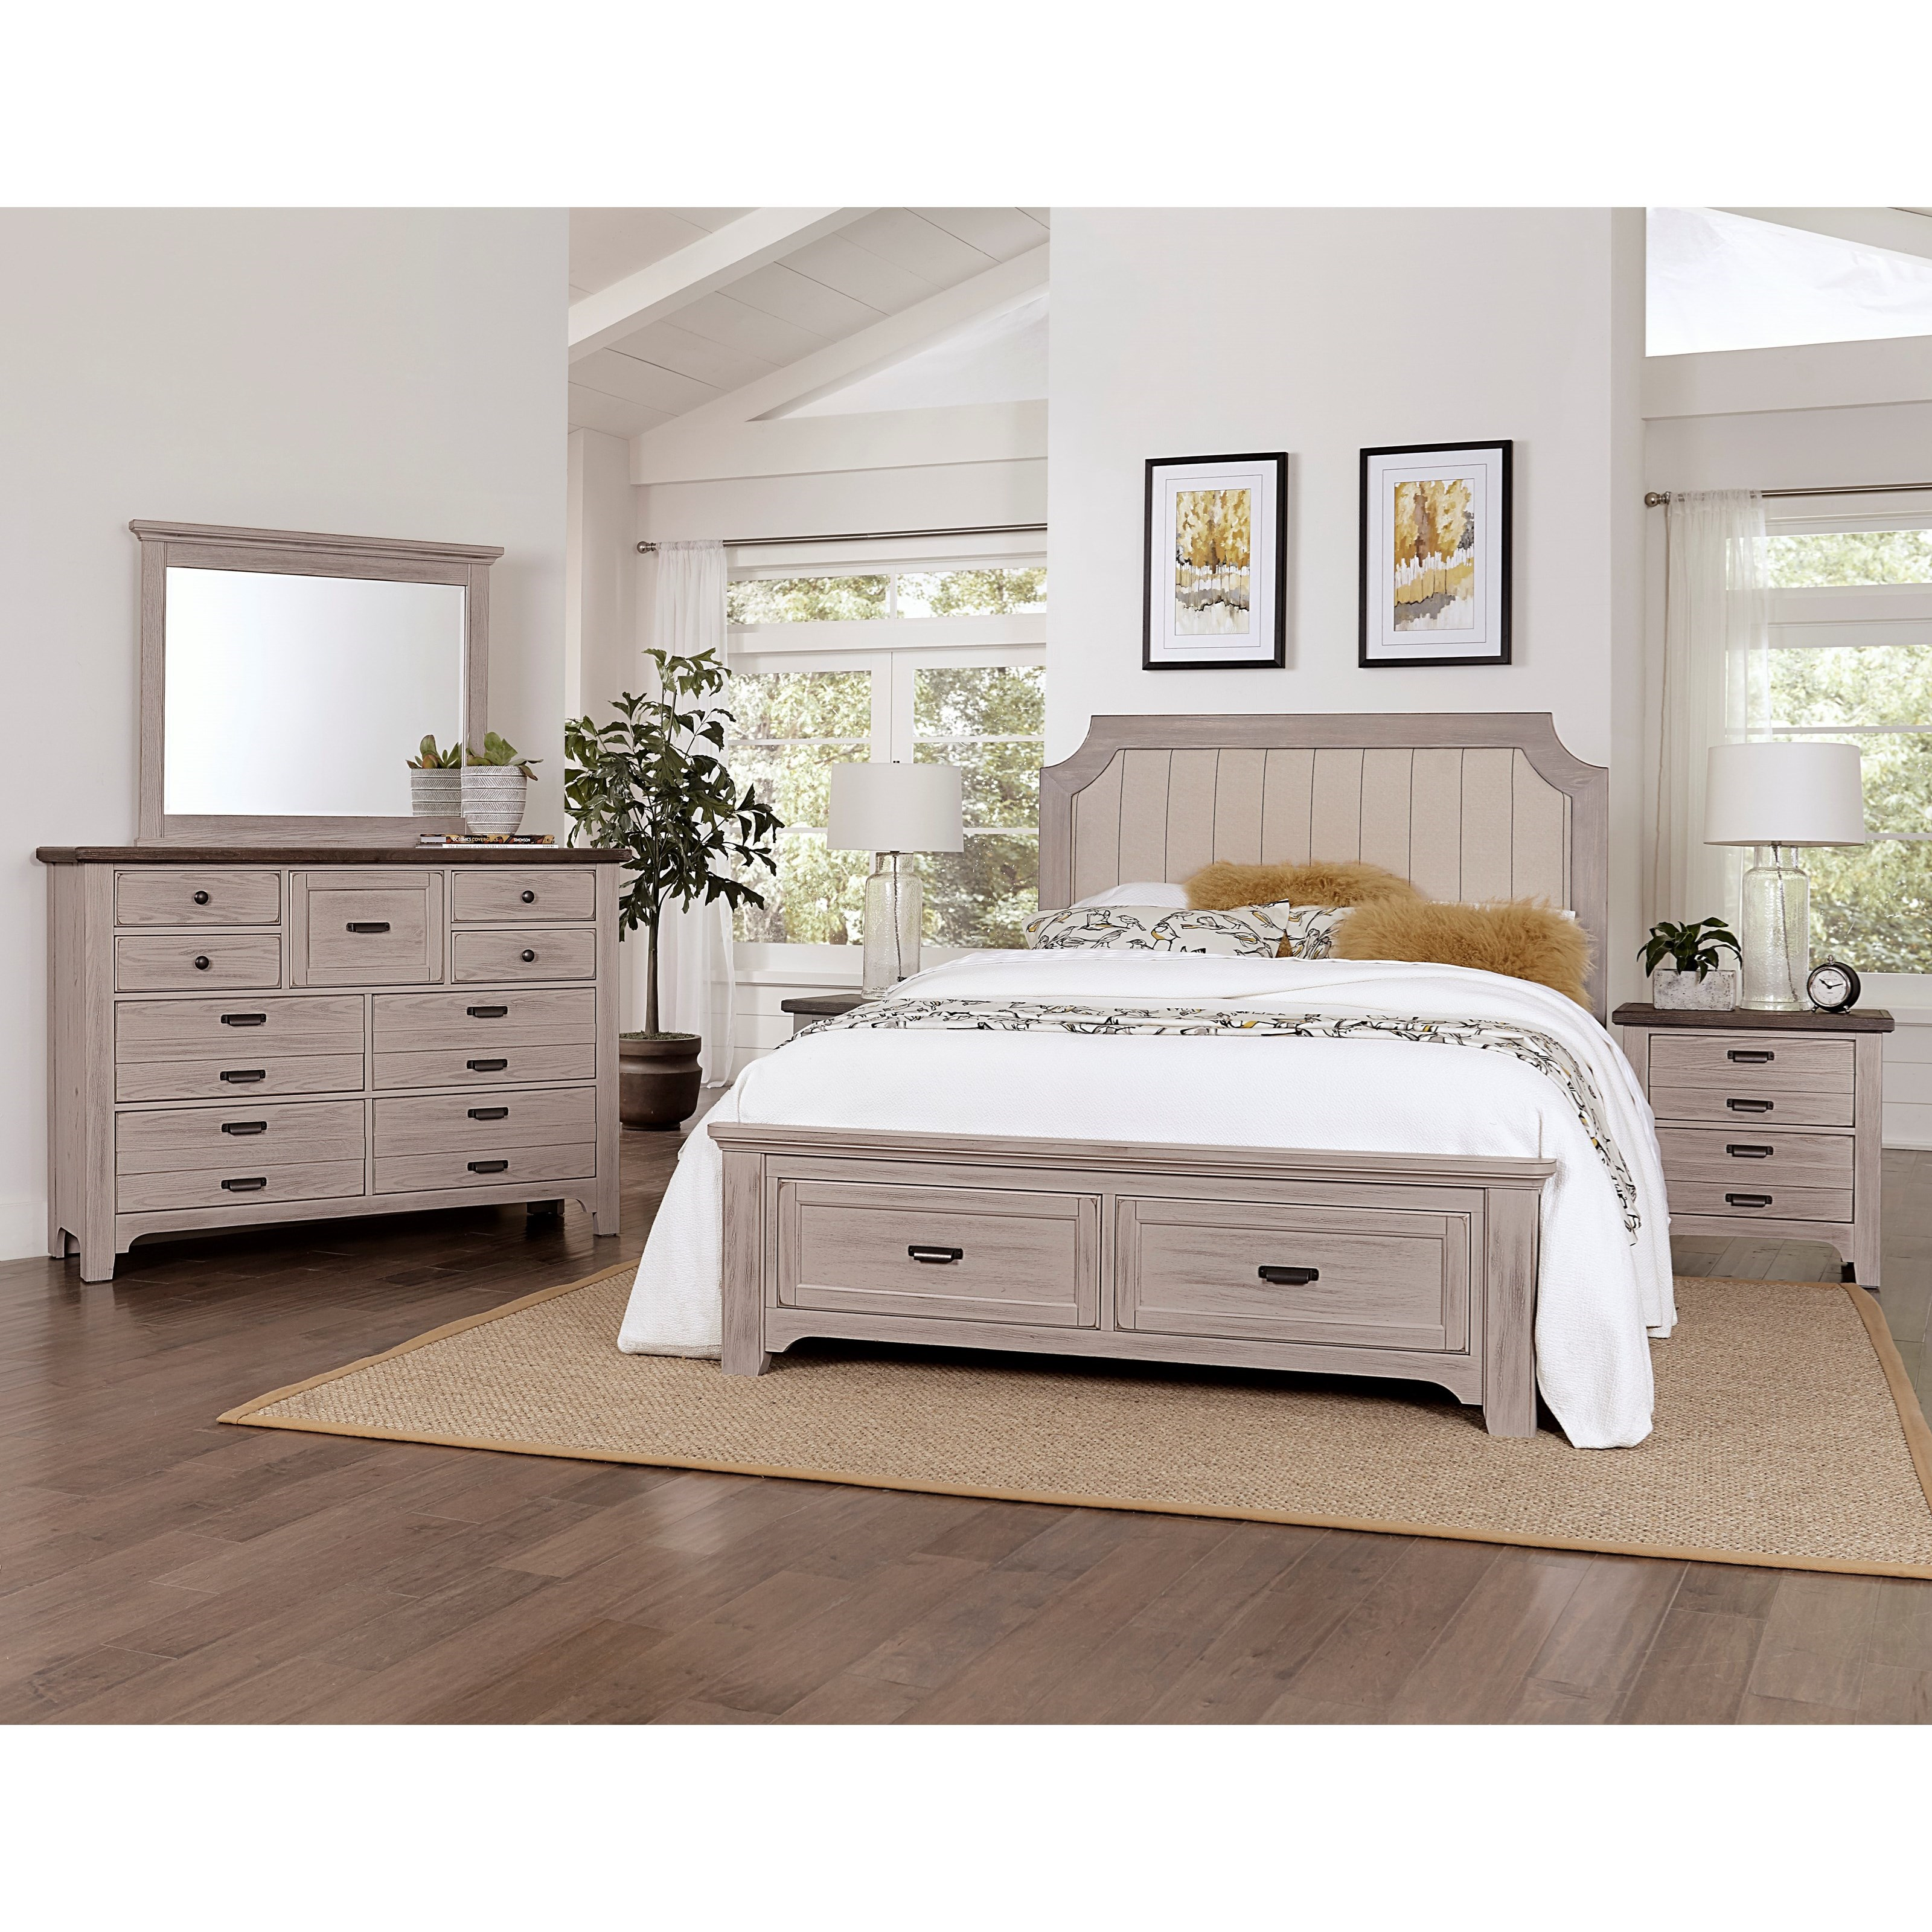 Bungalow King Bedroom Group by Vaughan-Bassett at Crowley Furniture & Mattress